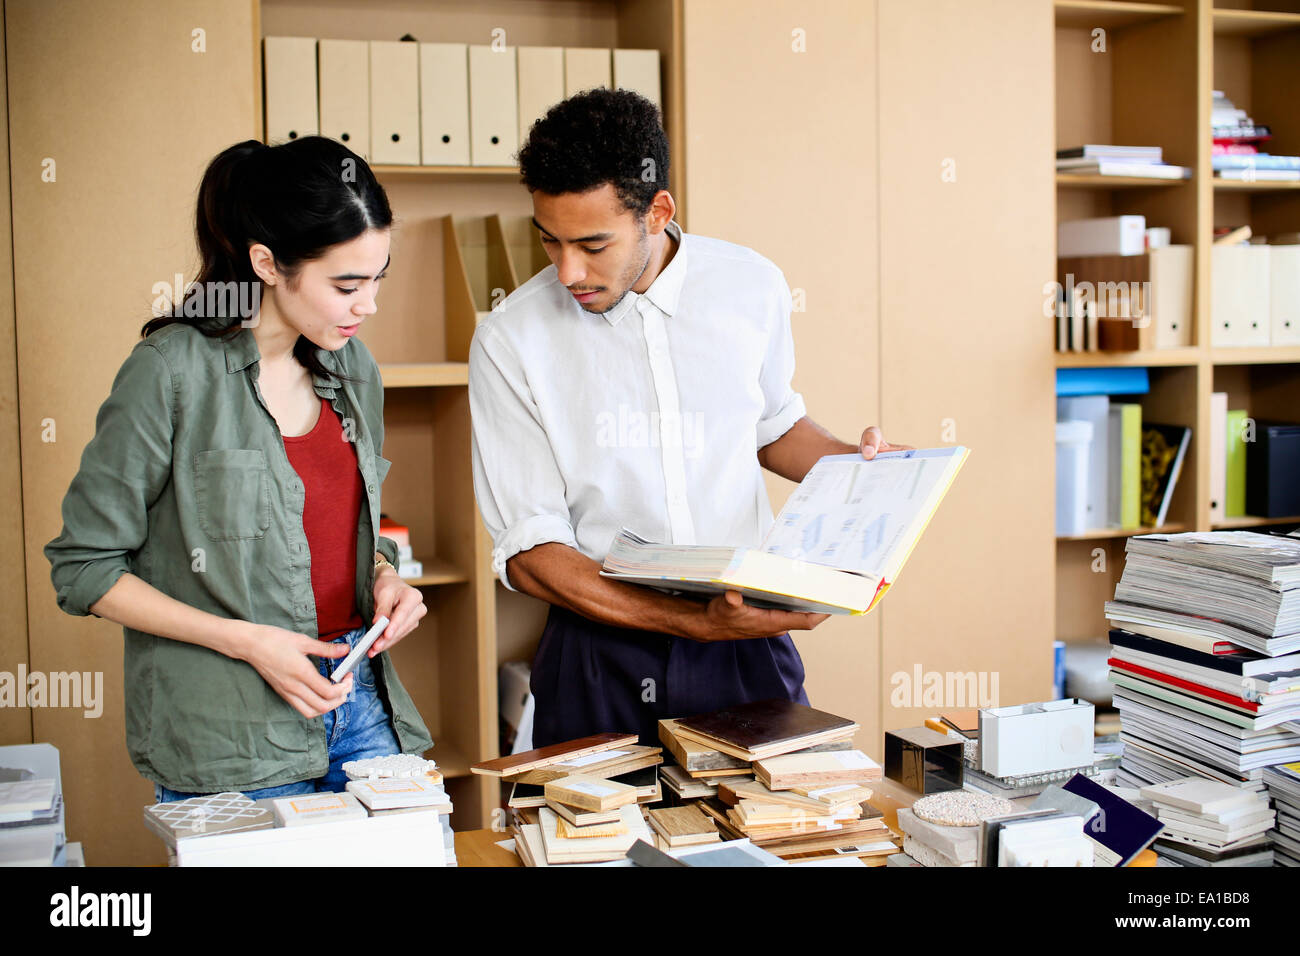 Designers having discussion on samples - Stock Image